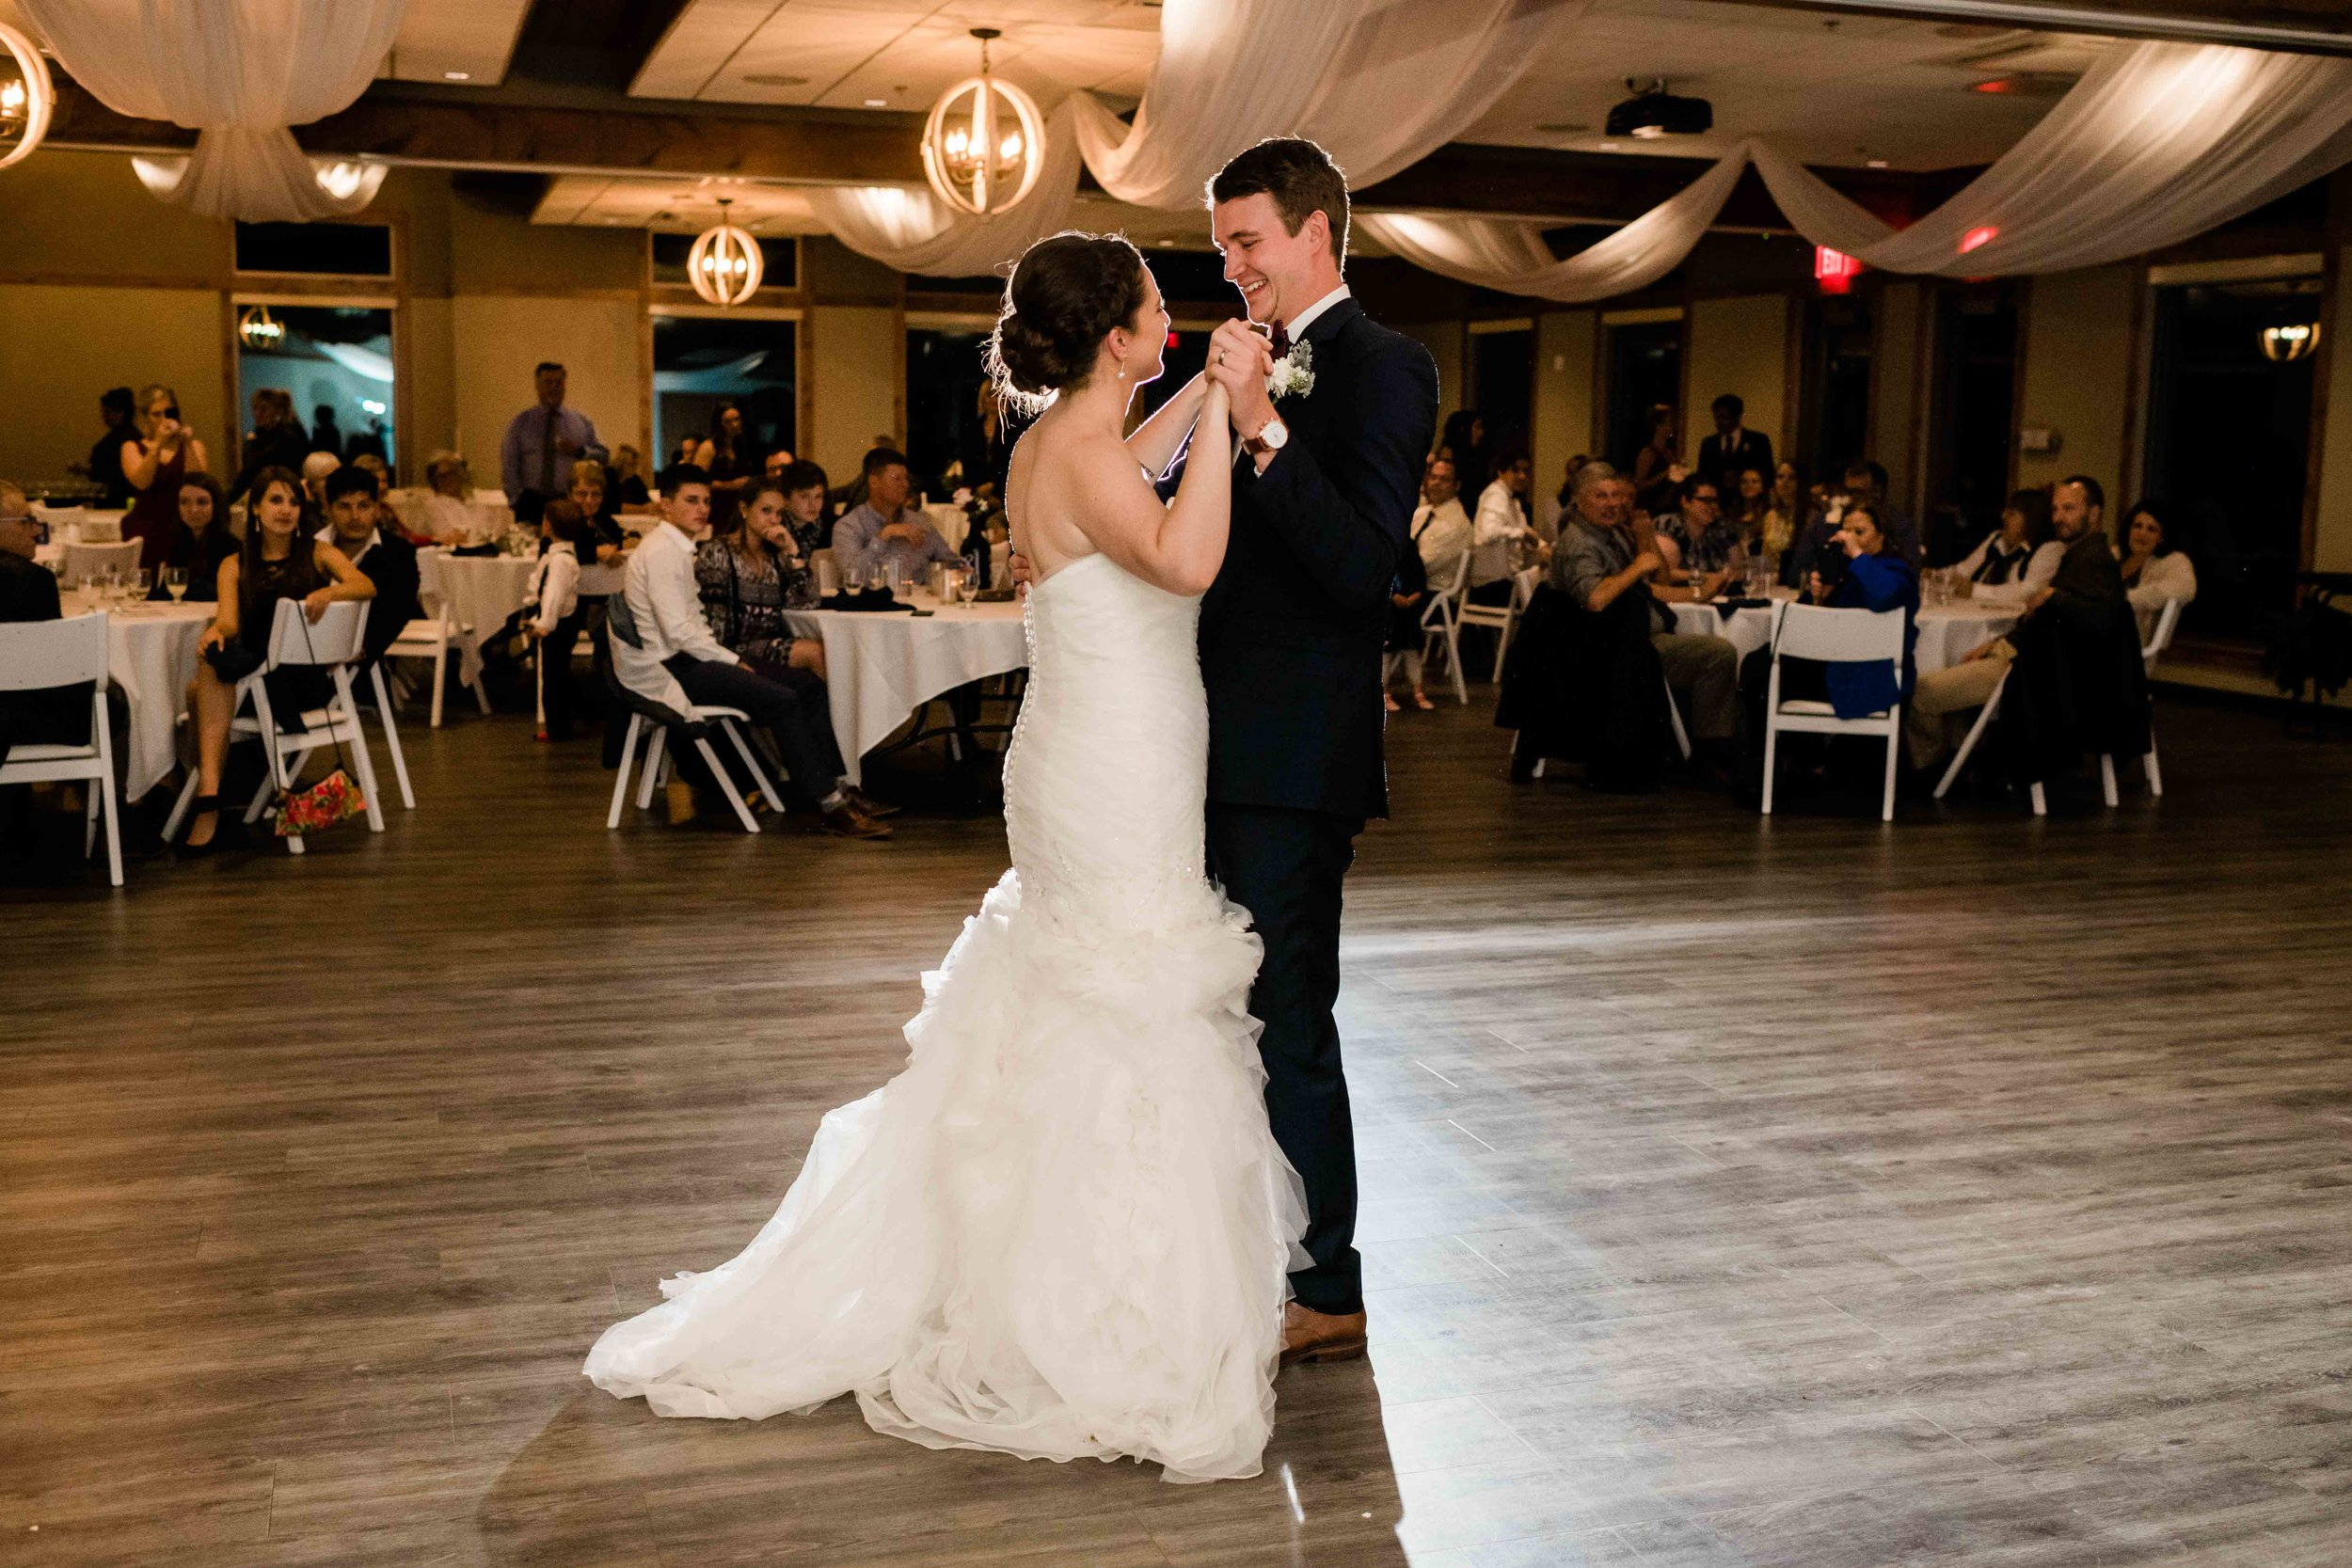 Bride and groom share their first dance as a married couple